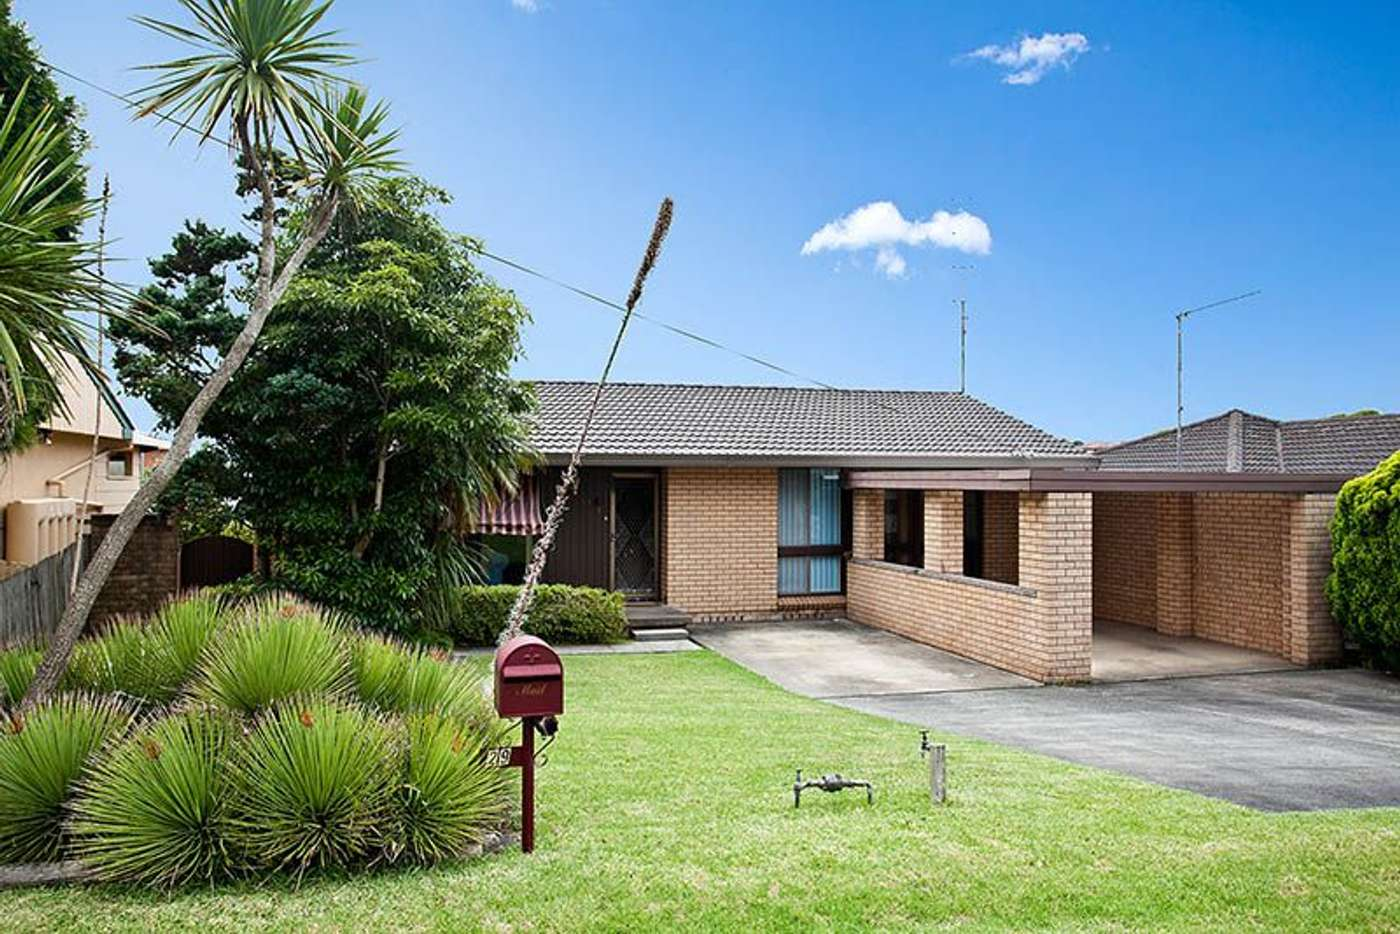 Main view of Homely house listing, 29 Loftus Drive, Barrack Heights NSW 2528